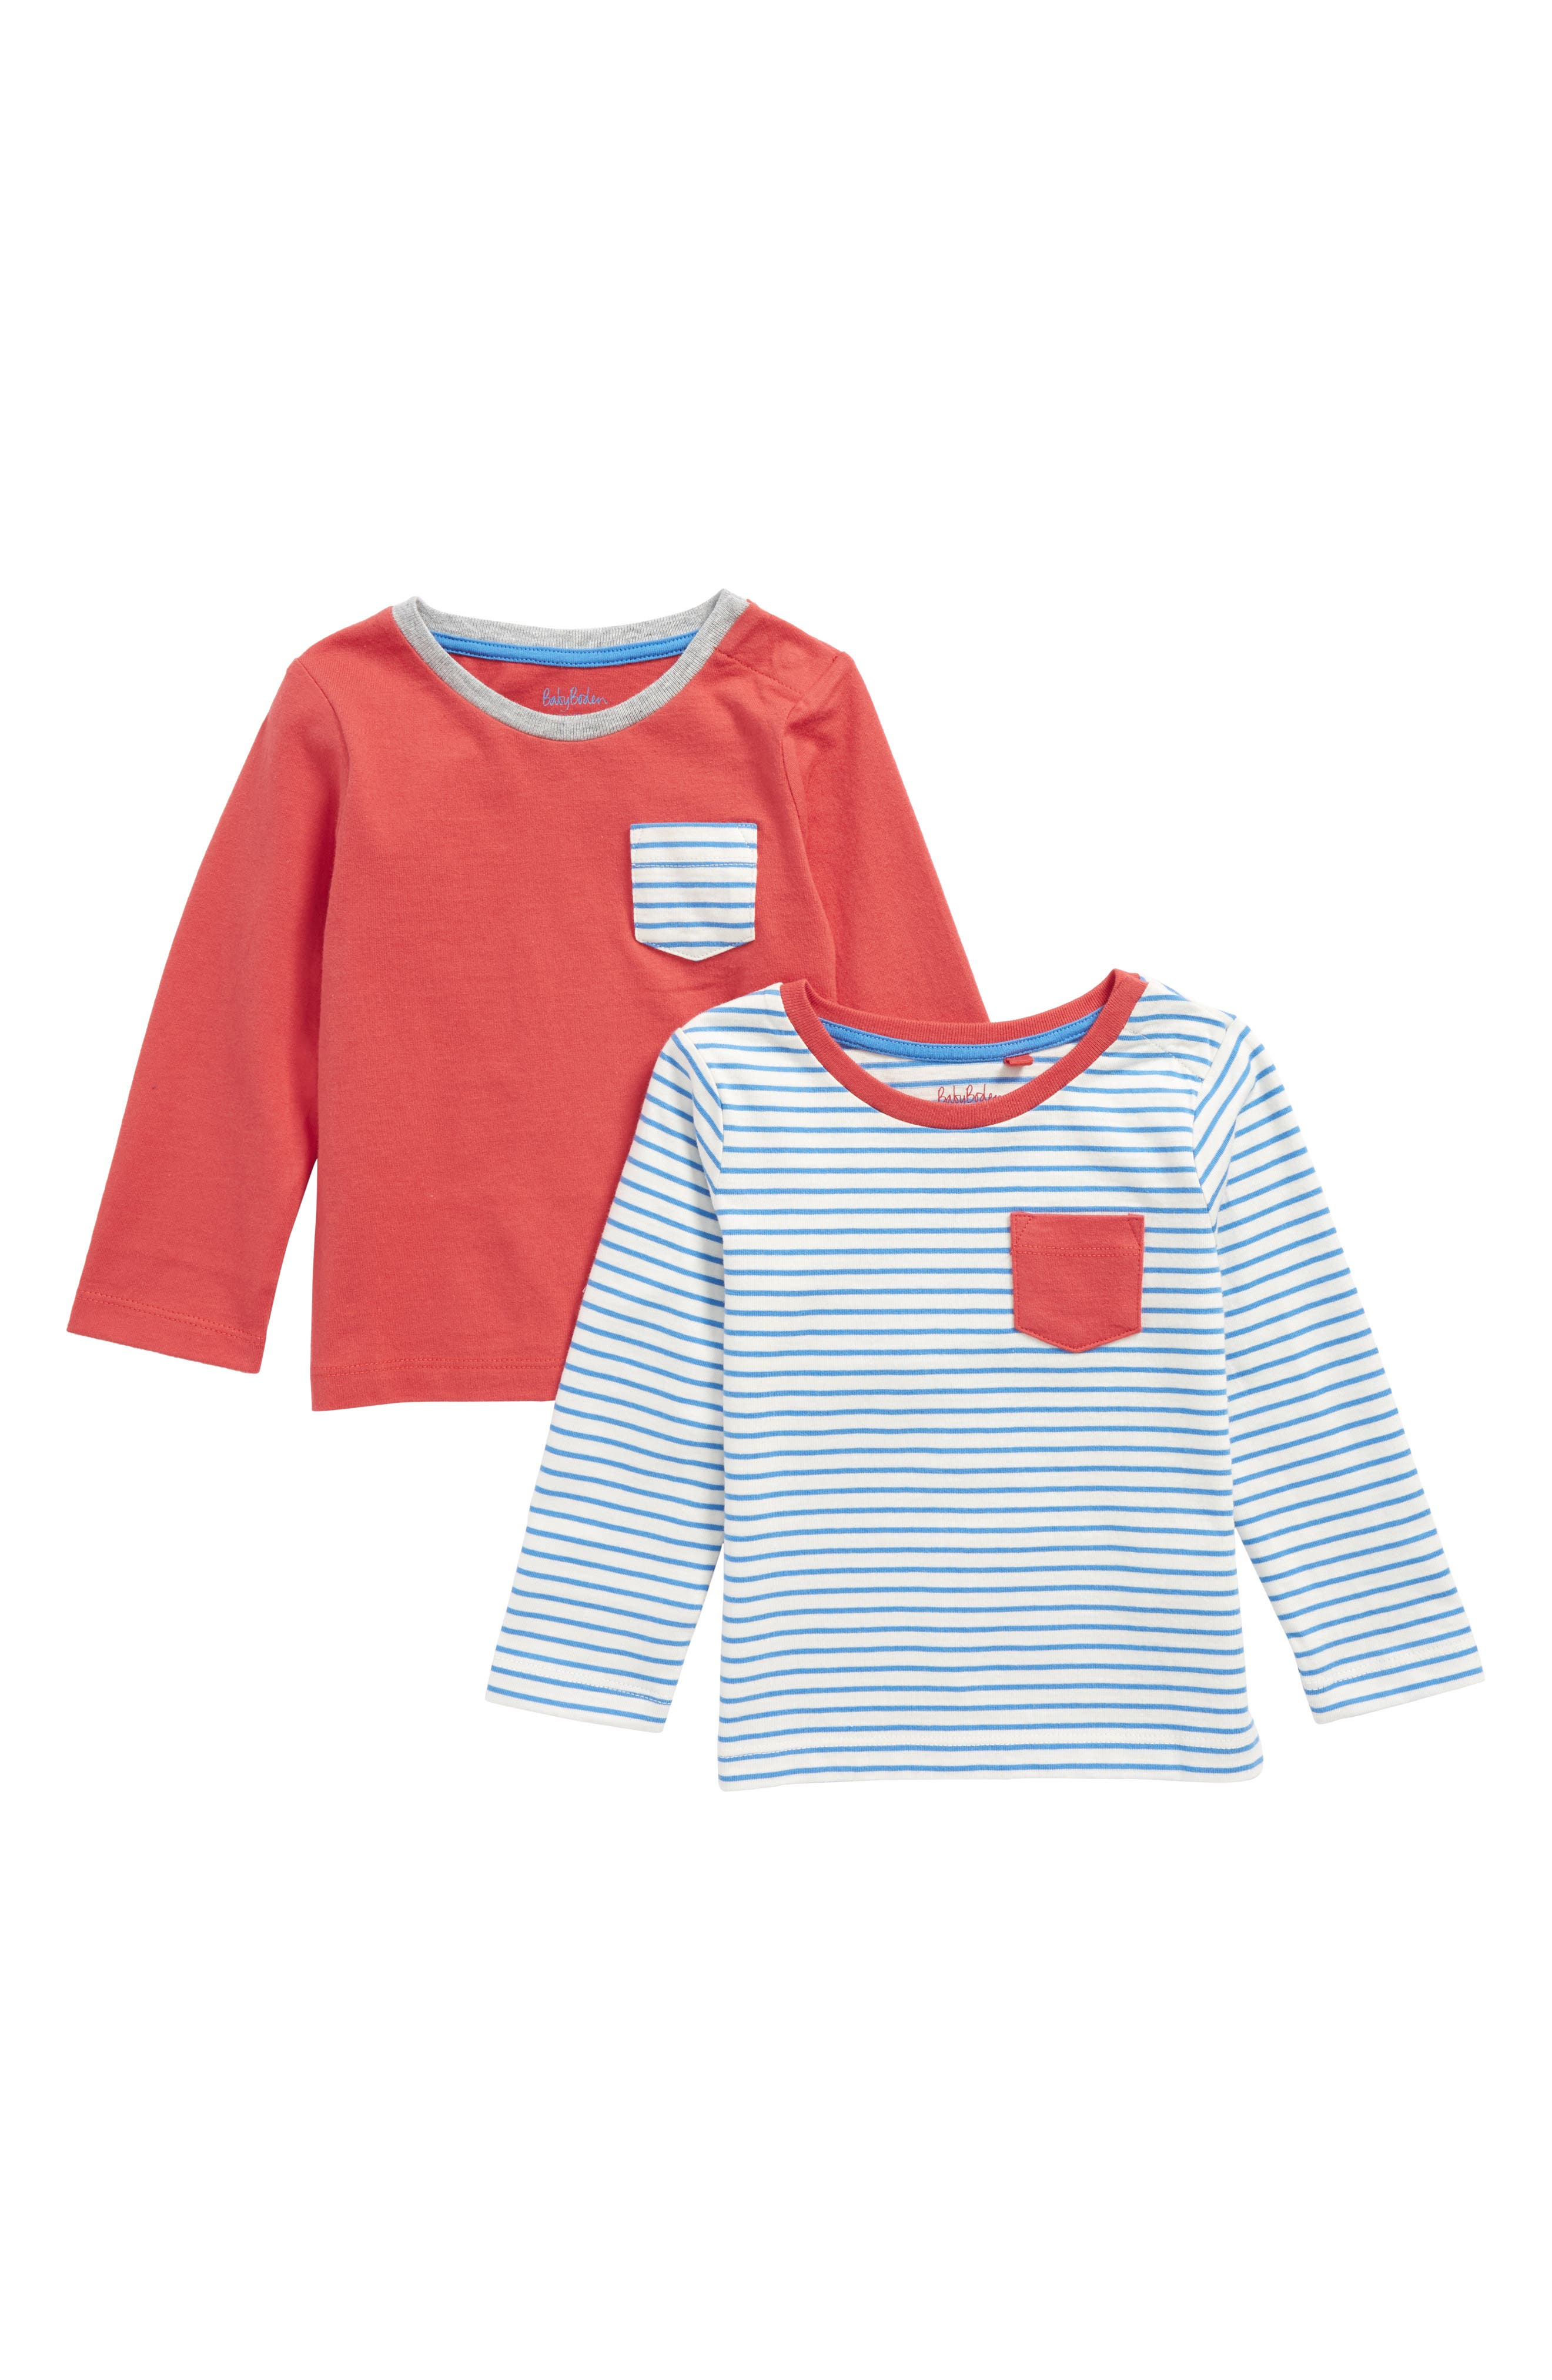 2-Pack Organic Cotton T-Shirts,                         Main,                         color, 424